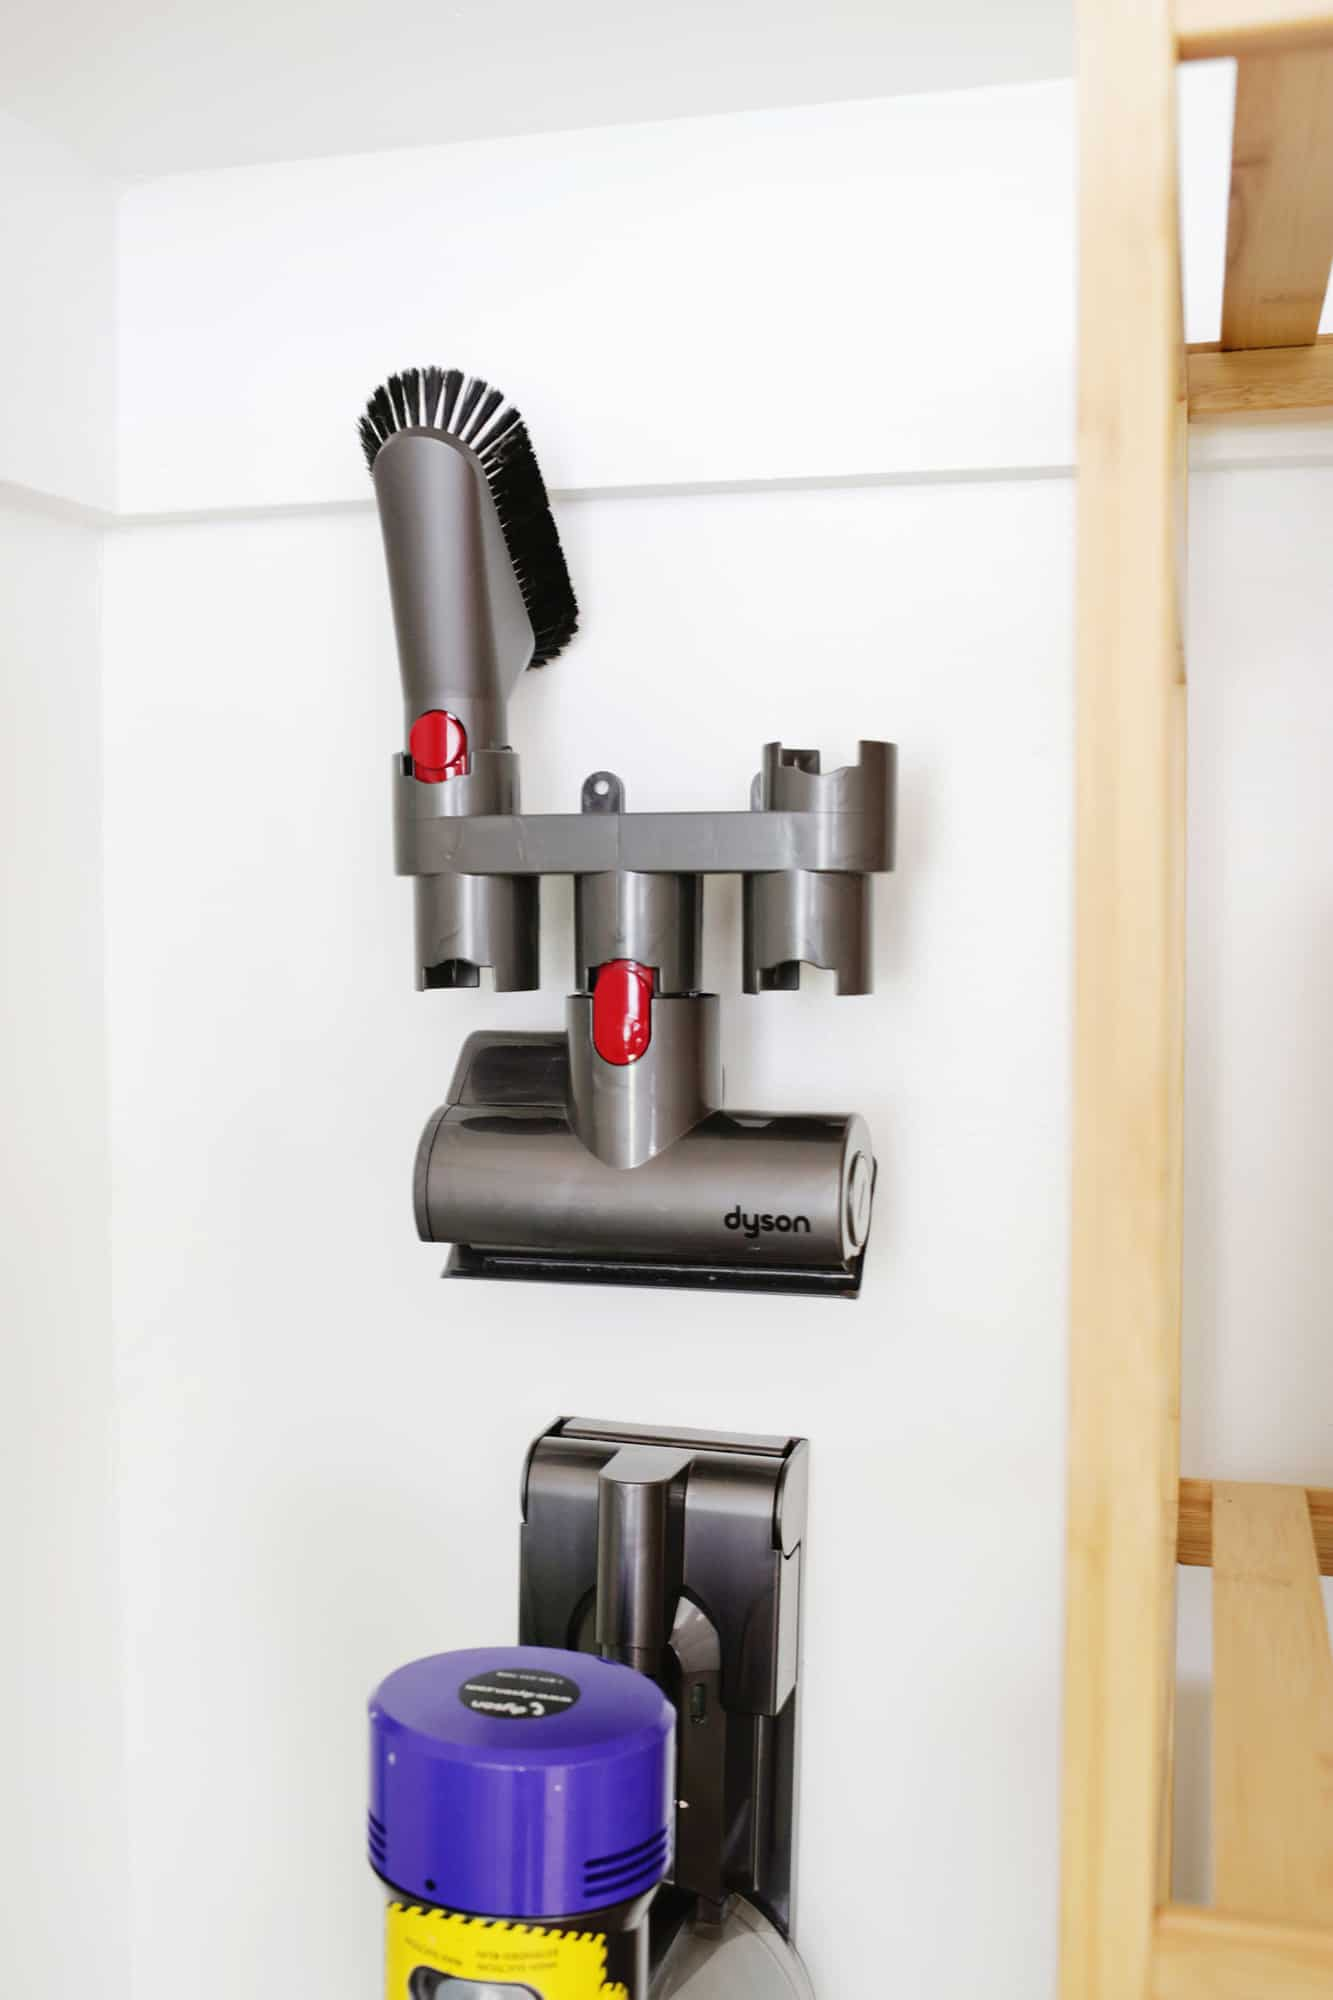 Hanging holder for vacuum attachments